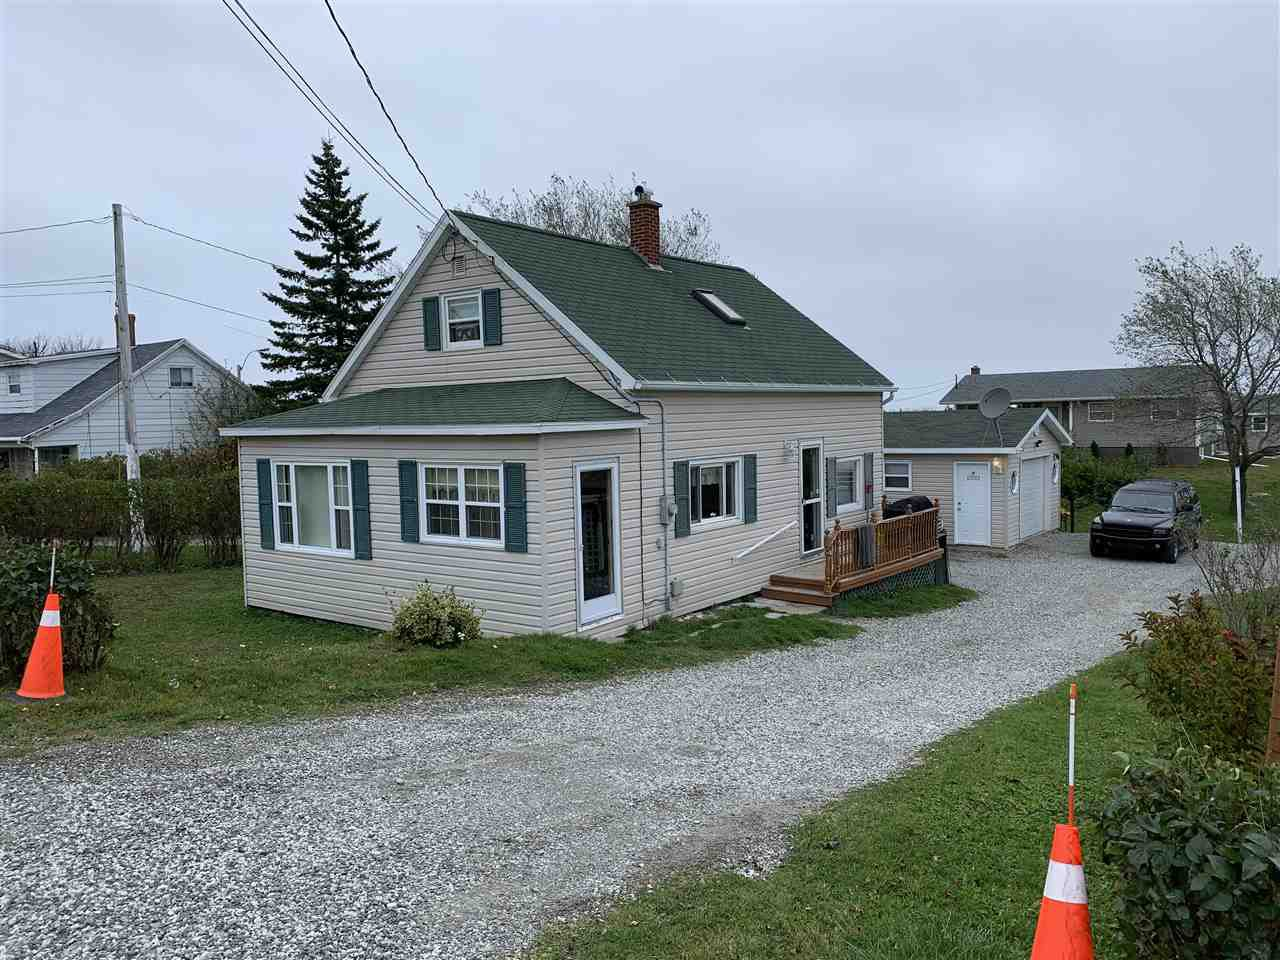 Main Photo: 179 Neville Street in Dominion: 207-C. B. County Residential for sale (Cape Breton)  : MLS®# 202022317